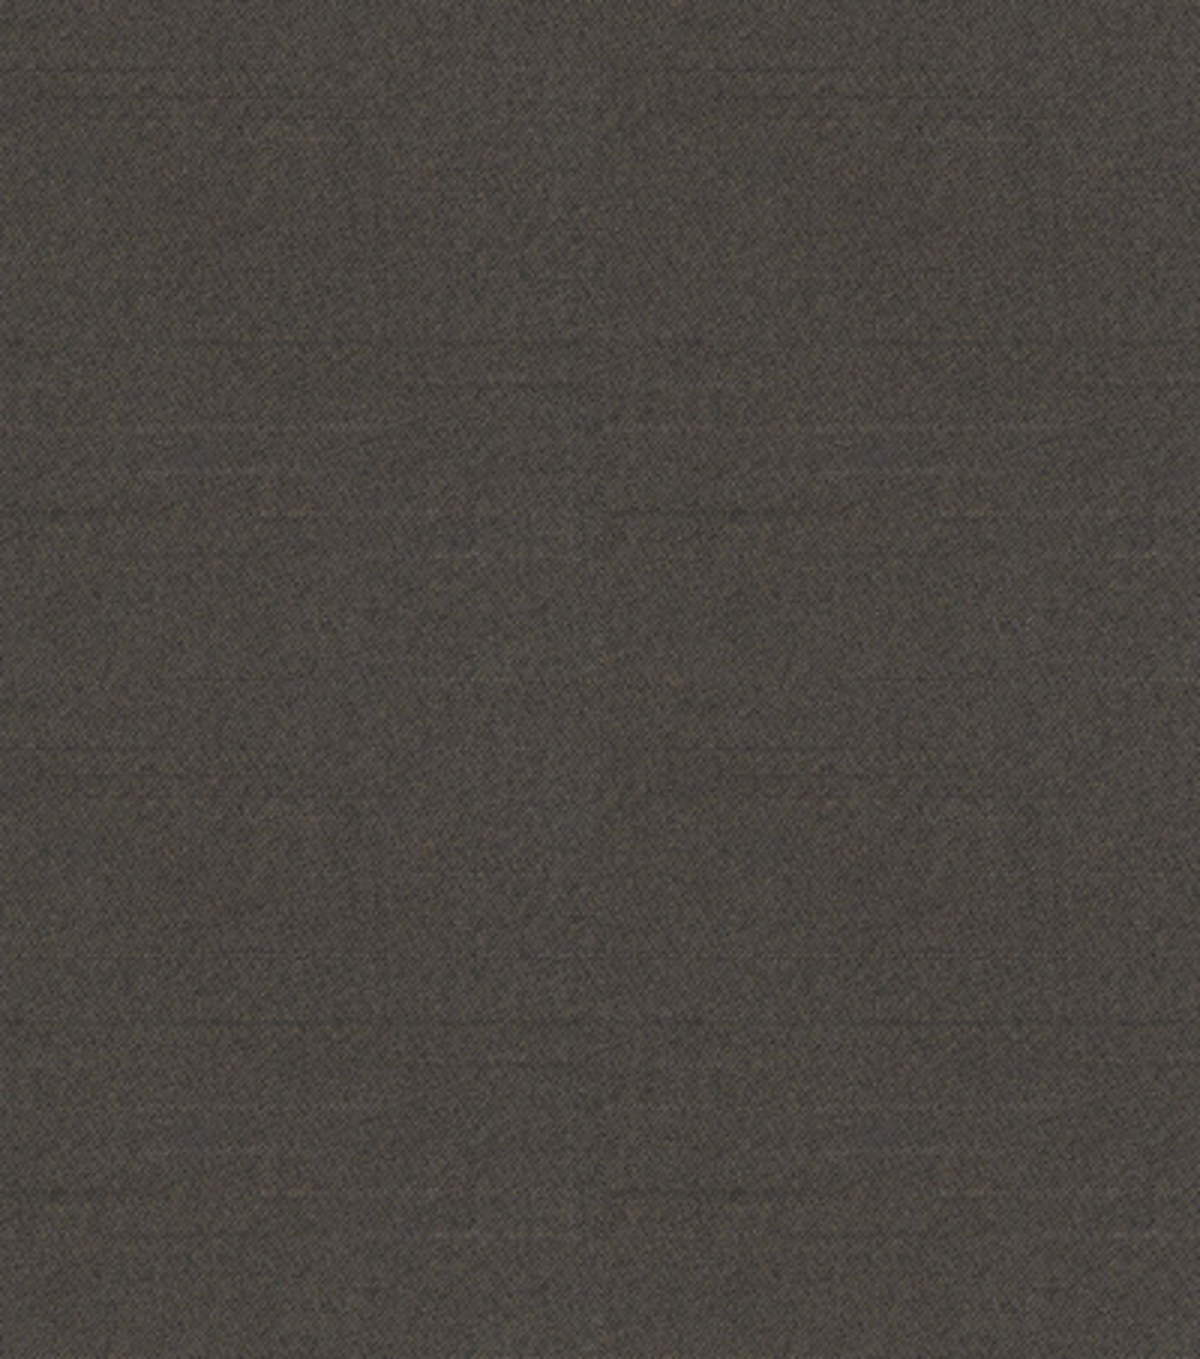 Home Decor 8\u0022x8\u0022 Fabric Swatch-HGTV HOME Polarized Zinc